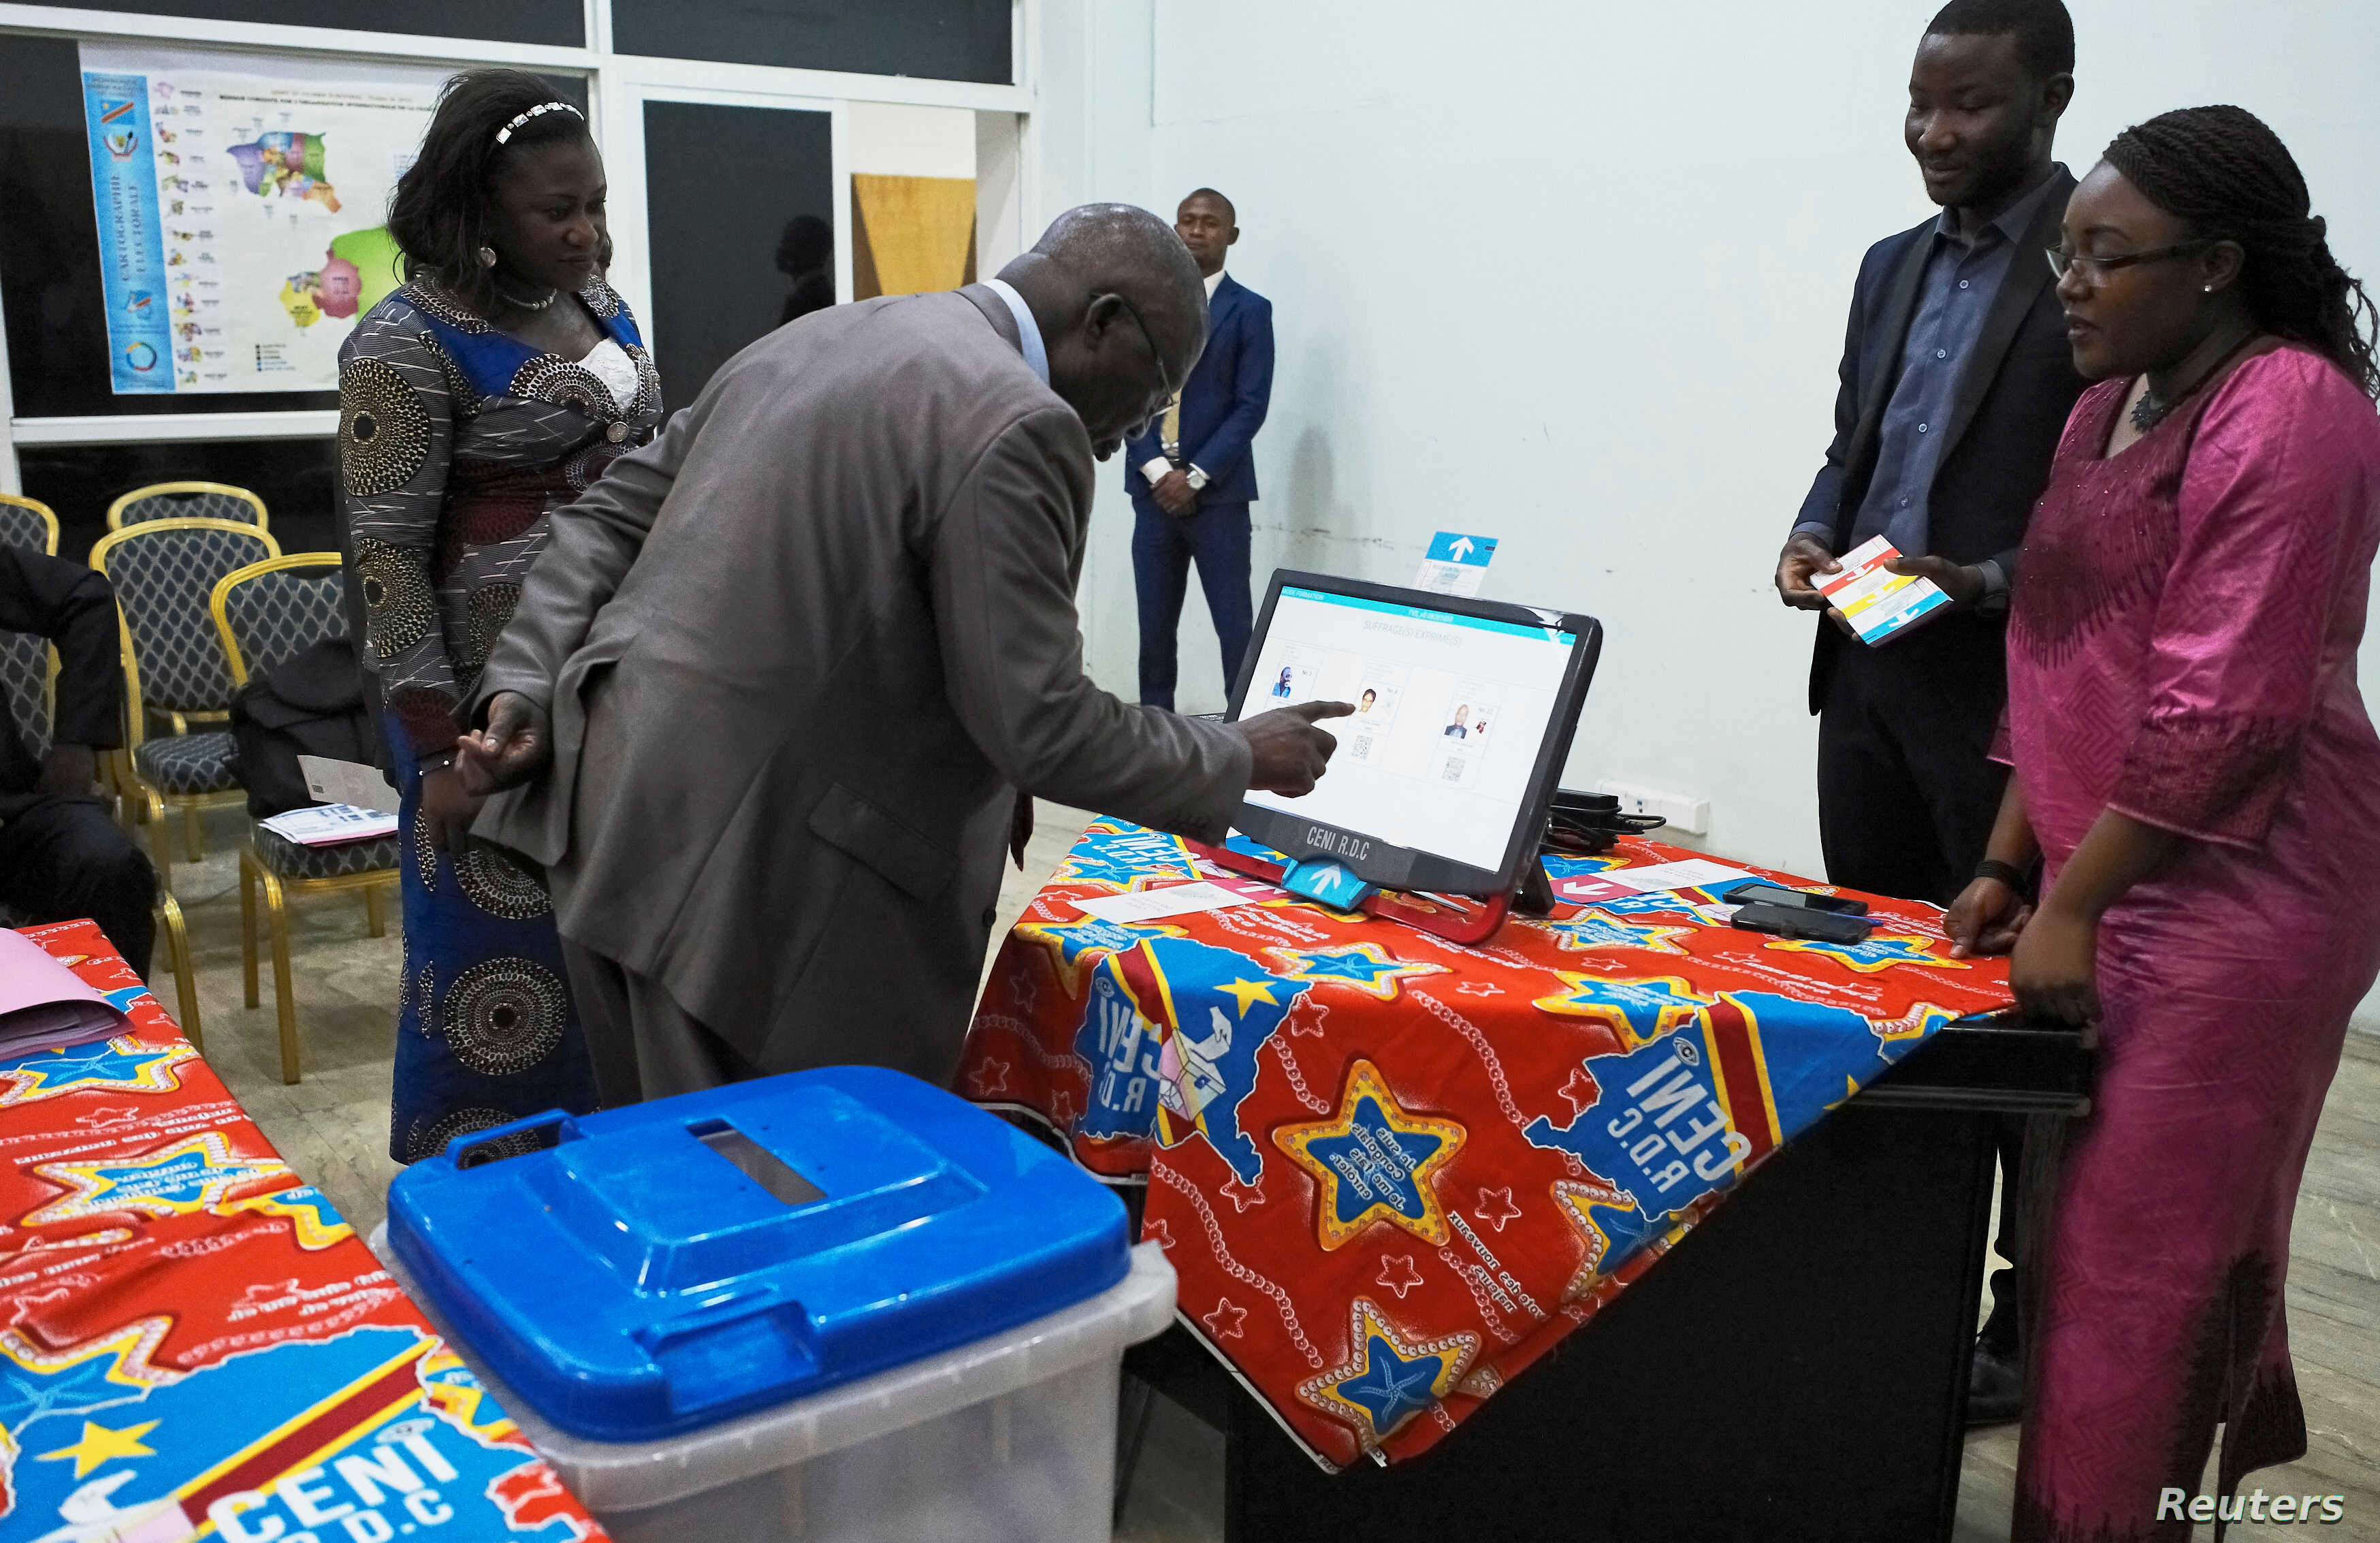 FILE - A man practices using an electronic voting machine during a demonstration inside Congo's electoral commission (CENI) head offices in Gombe Municipality of Kinshasa, Democratic Republic of Congo, March 1, 2018.